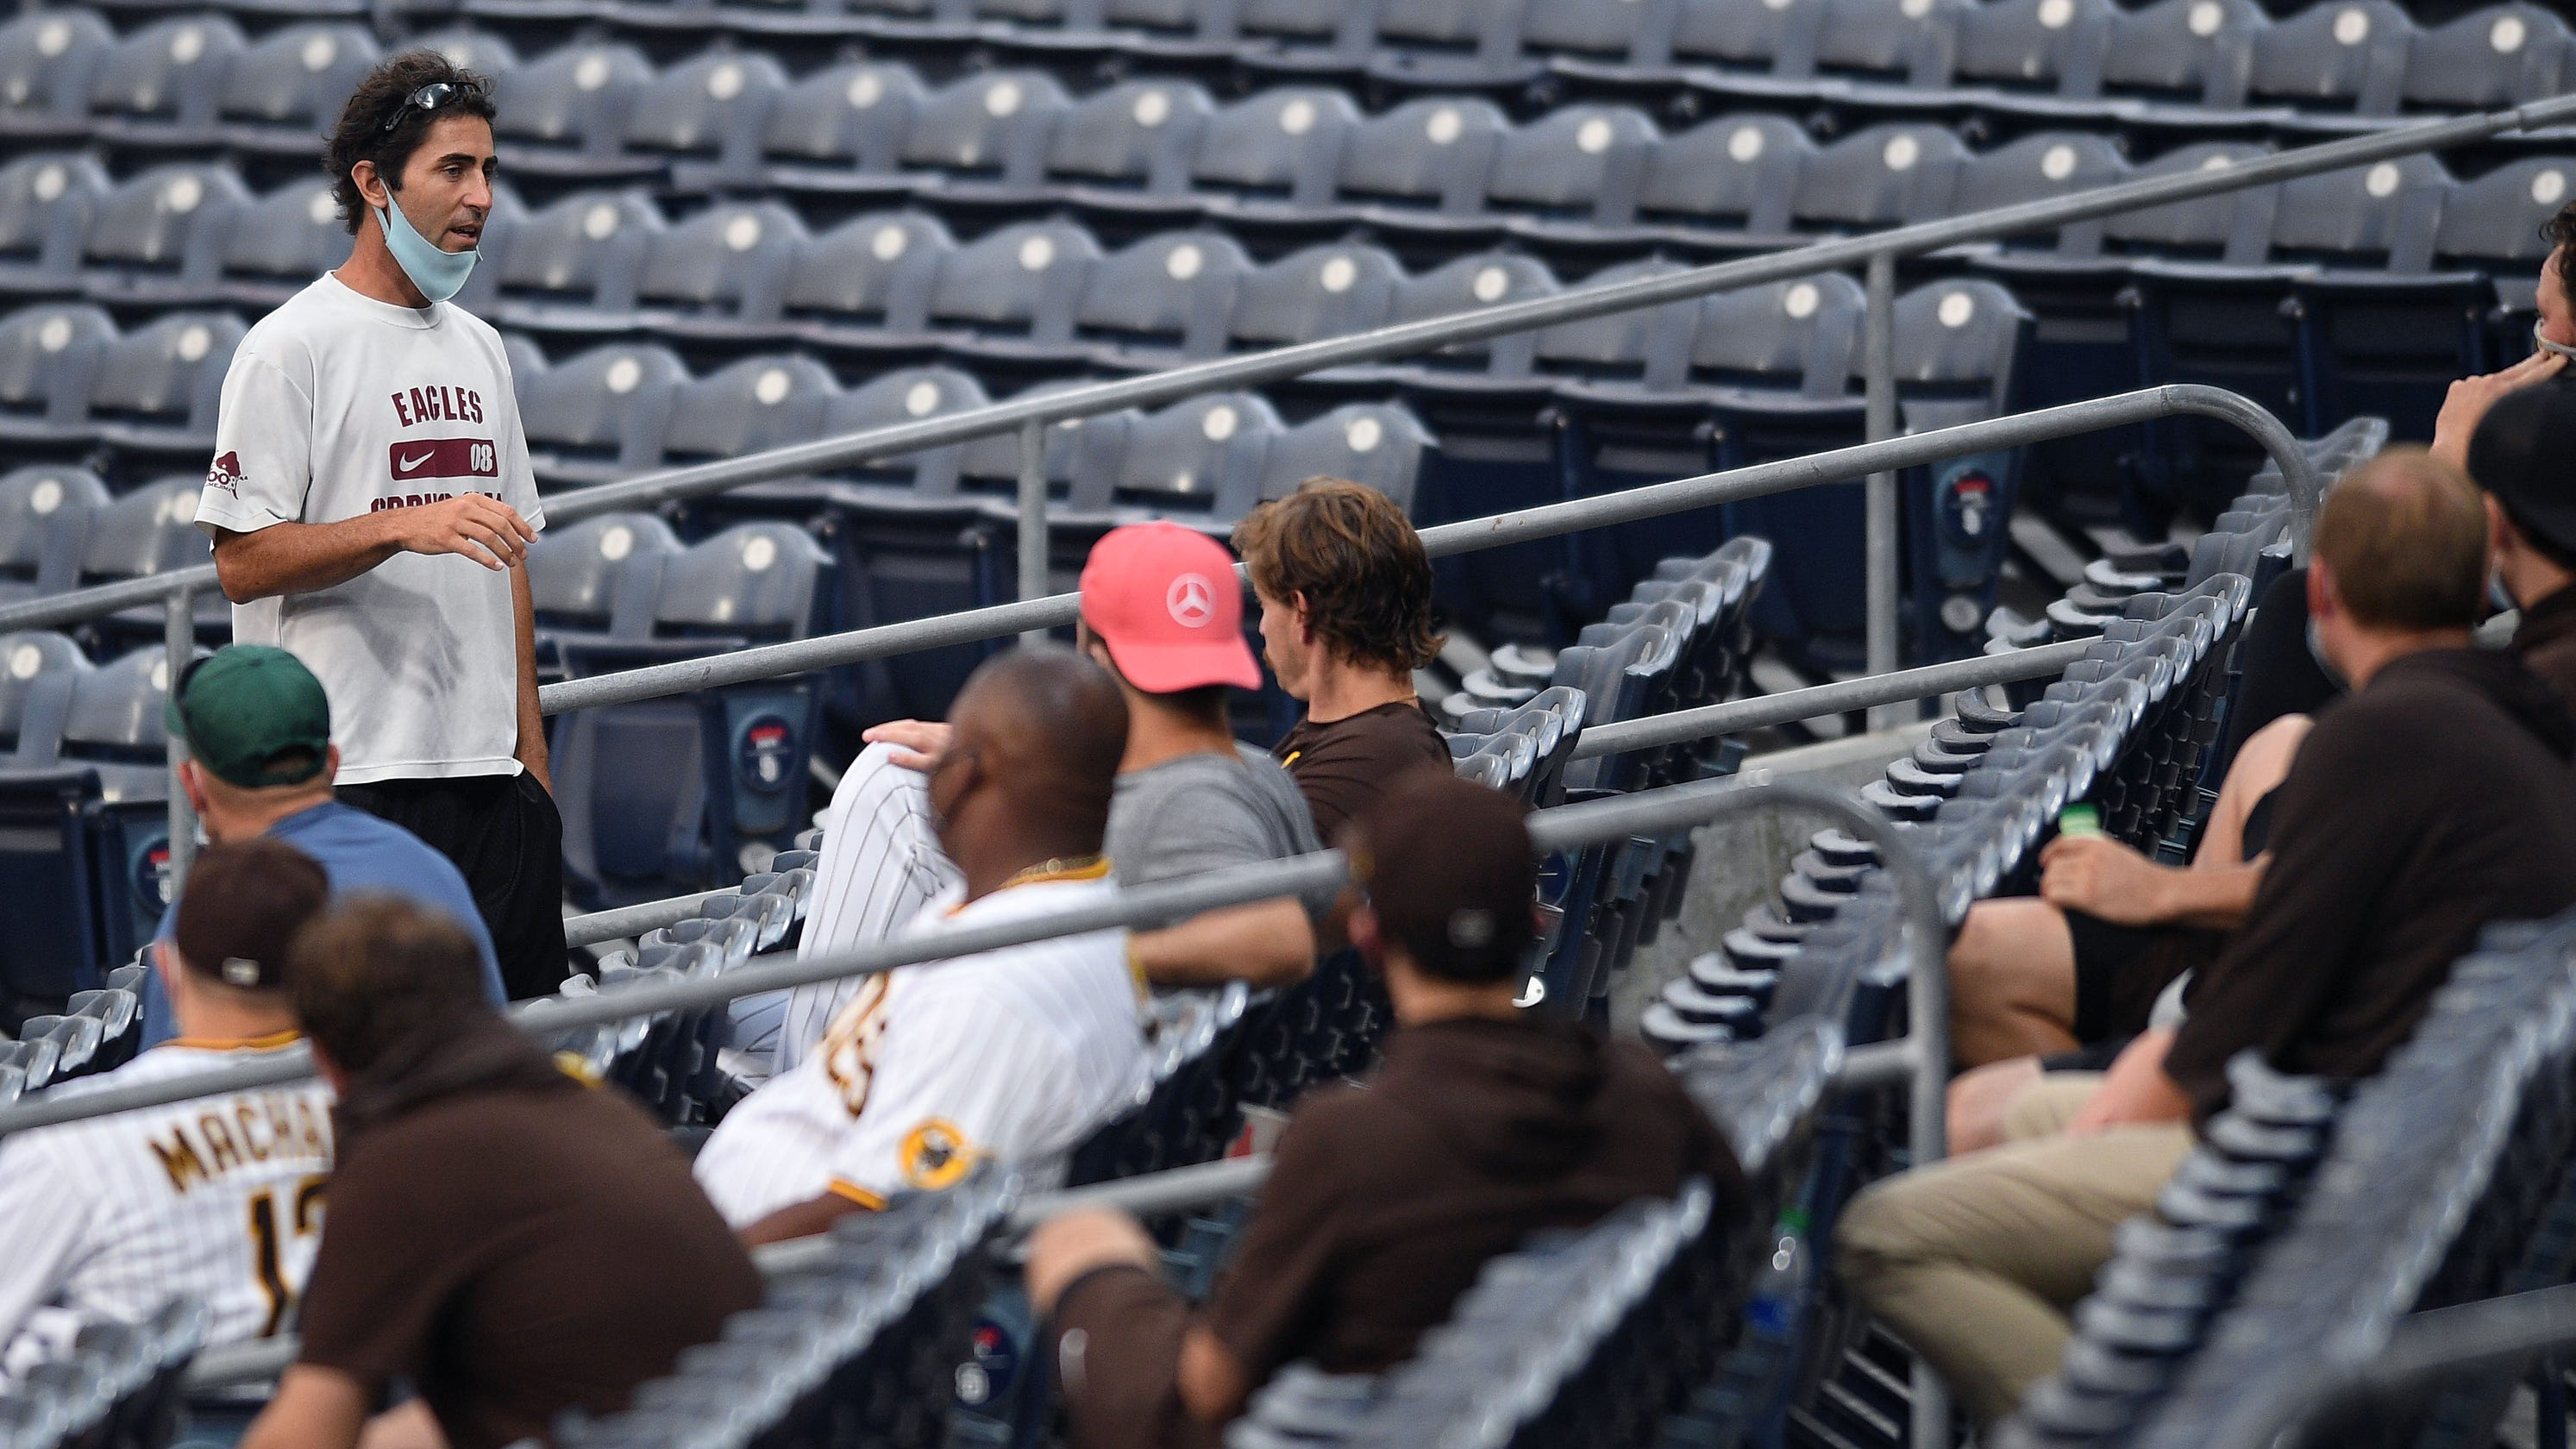 Opinion: MLB is jarred again as Giants-Padres games are postponed because of COVID-19